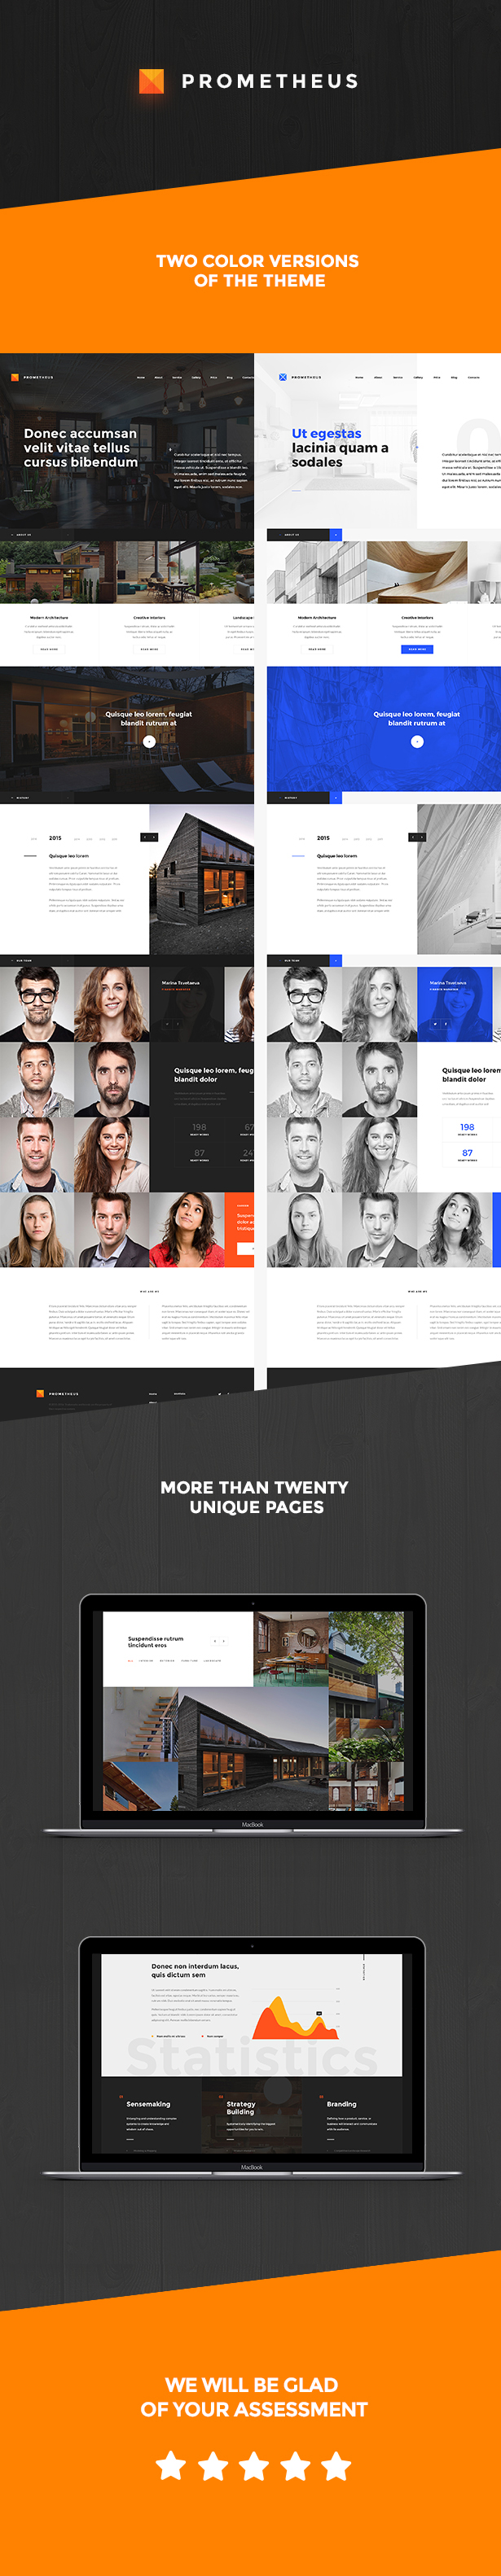 Prometheus – Multipurpose HTML Template by Templines | ThemeForest